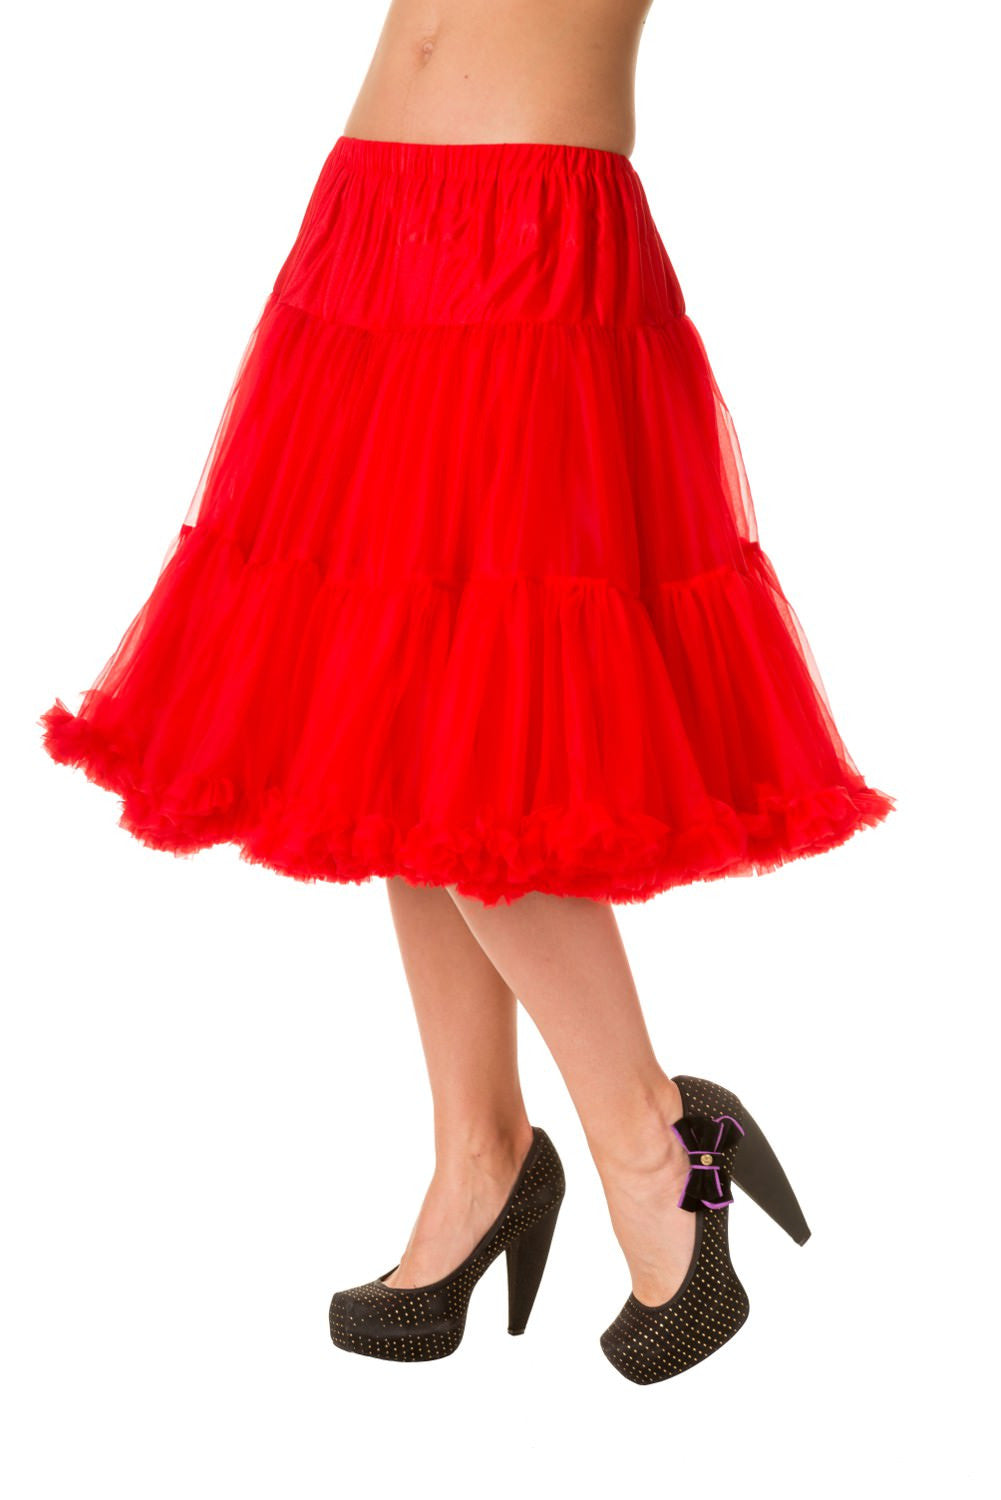 Starlite Petticoat in Red